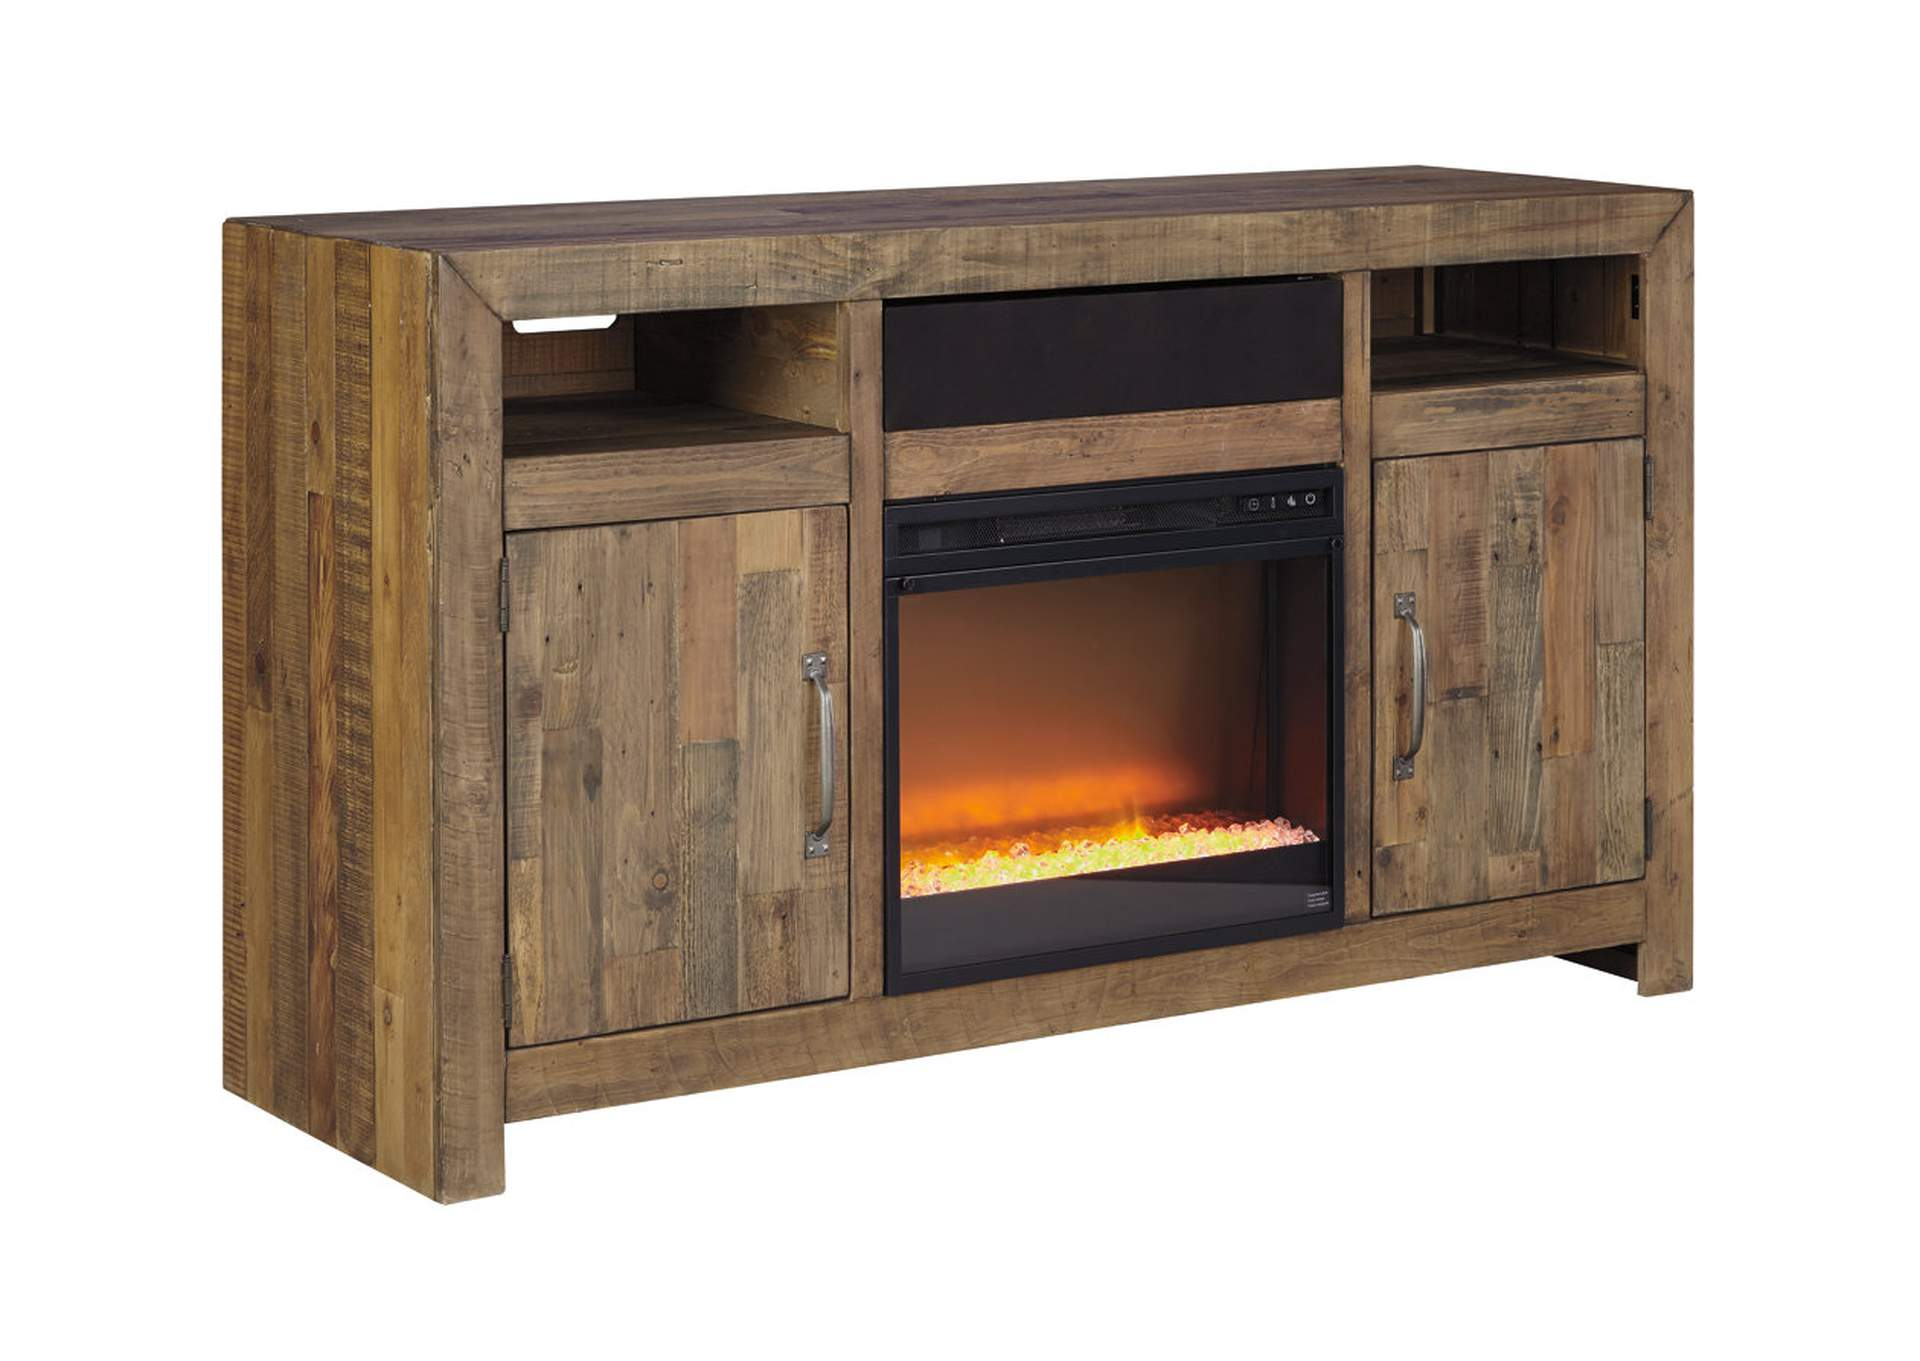 Sommerford Brown Large TV Stand w/Fireplace and Small Integrated Audio,Signature Design By Ashley